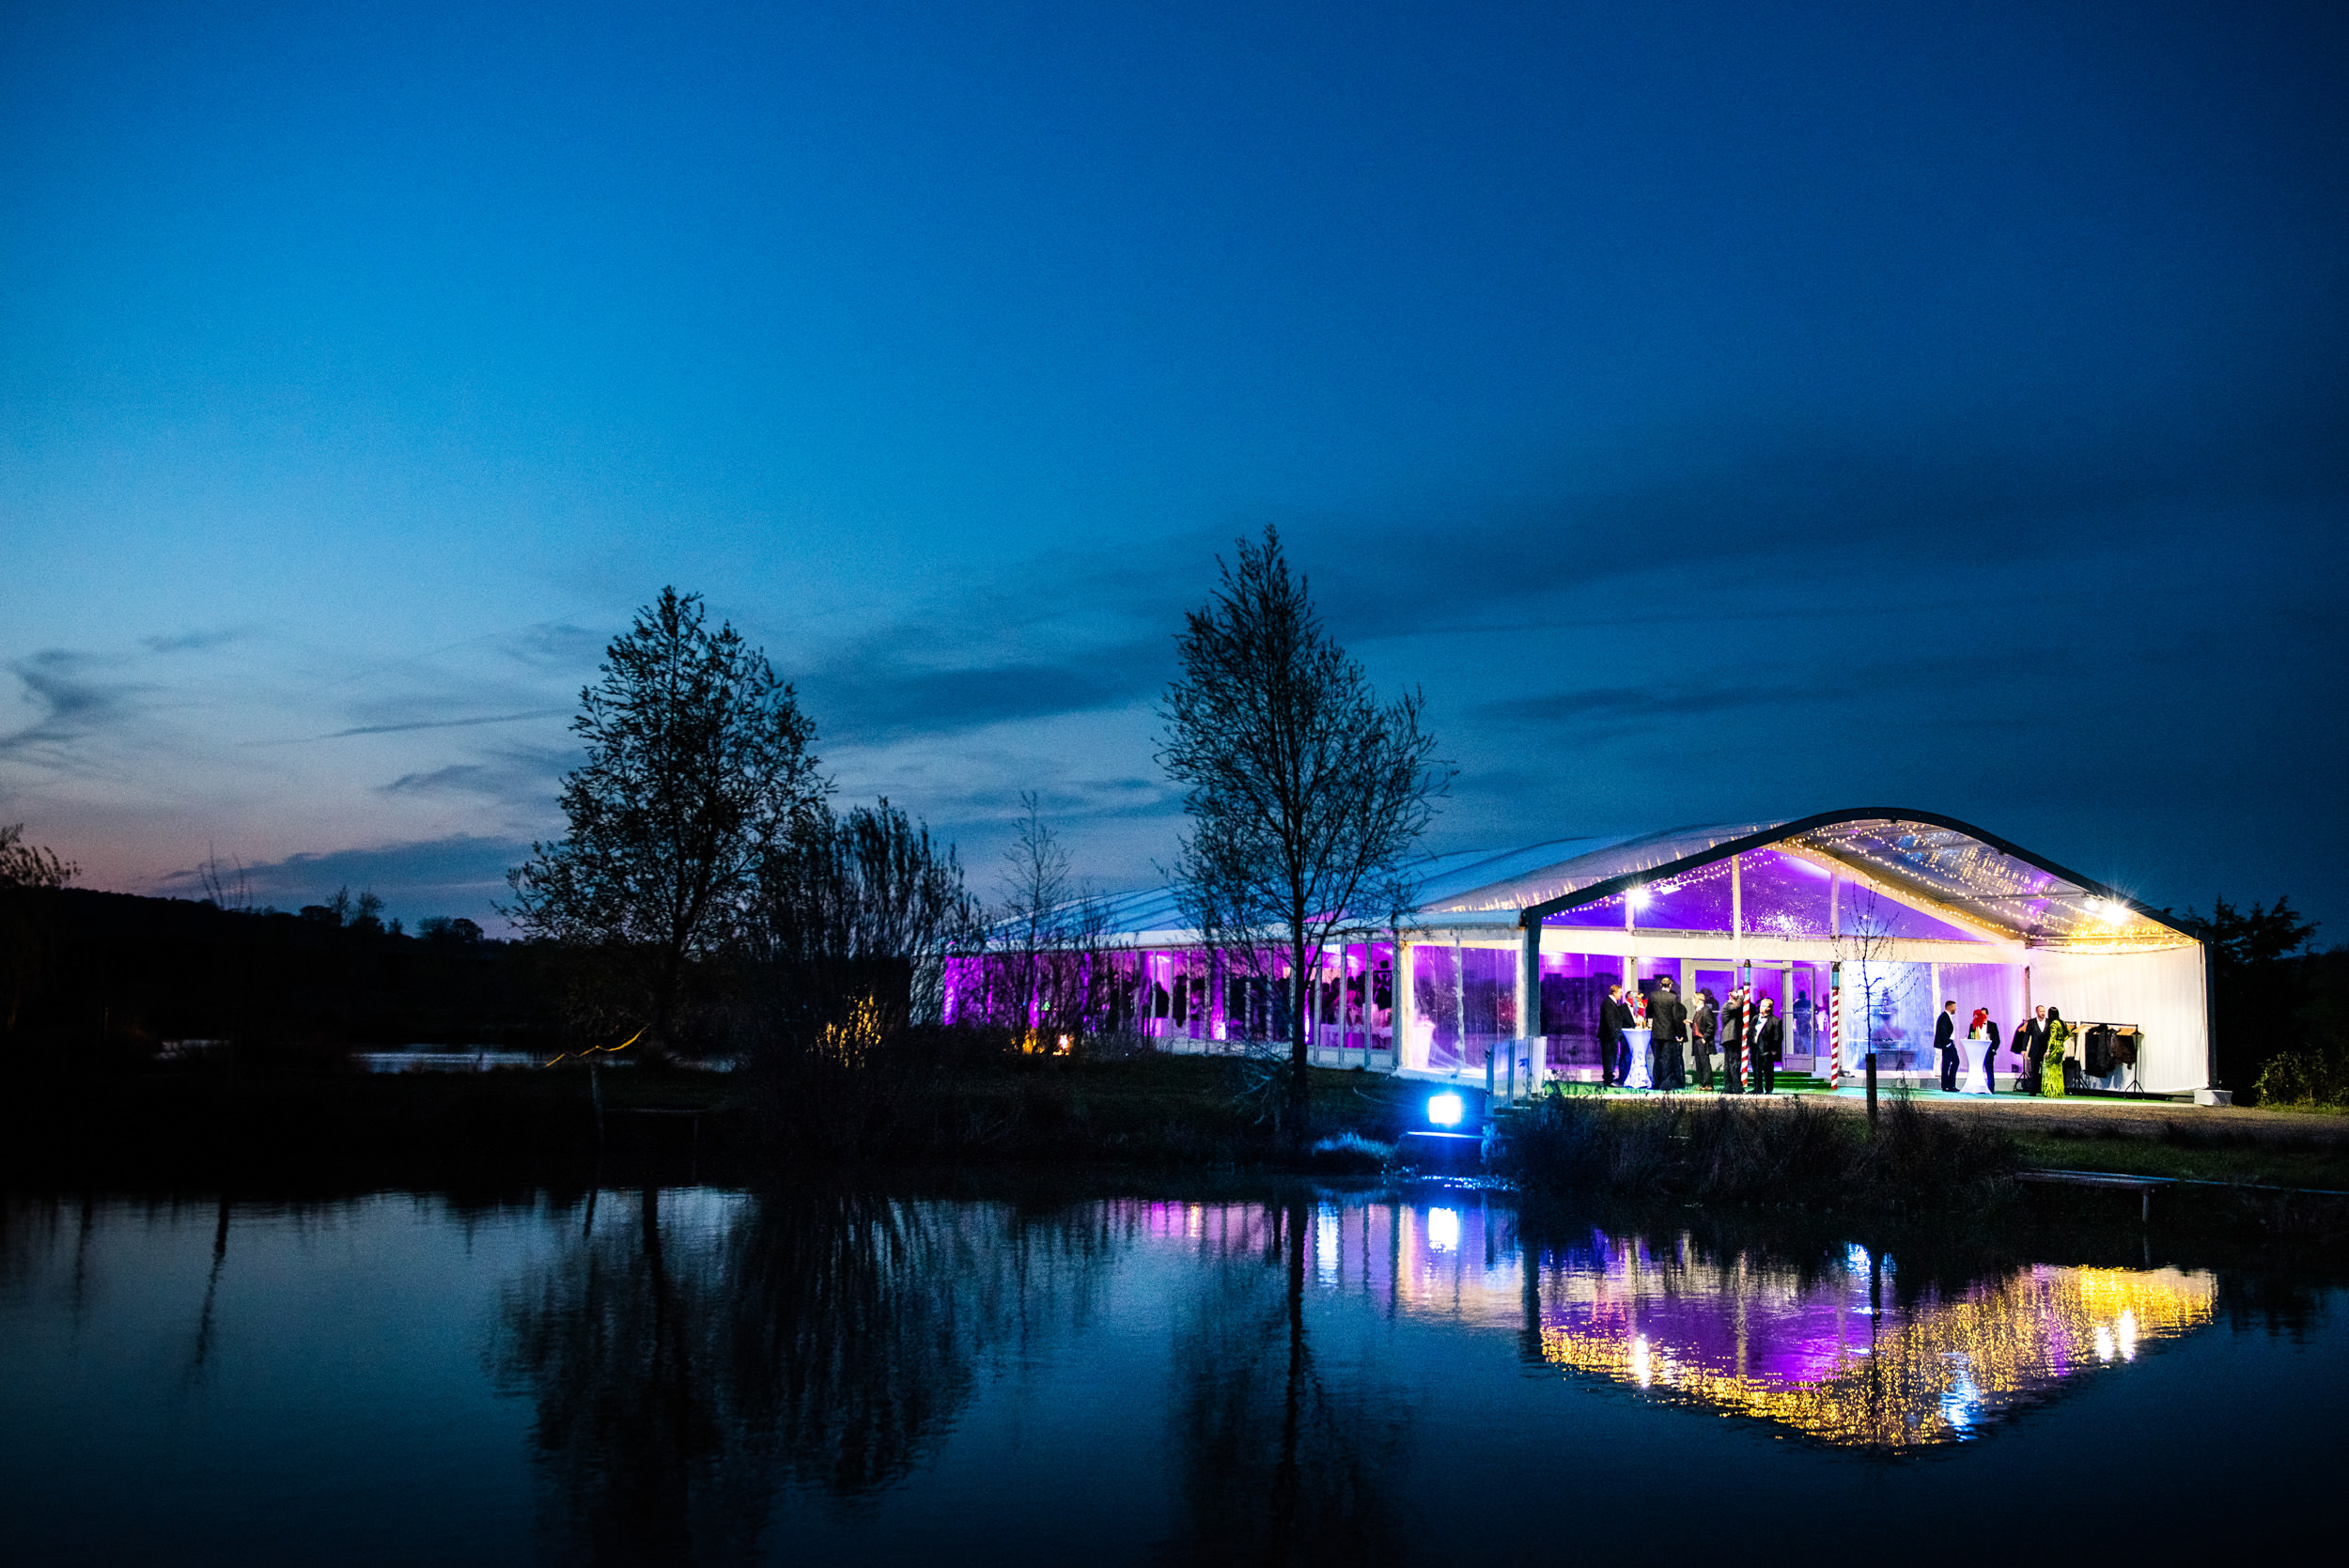 Evening shot of a Fews Marquee colourfully lit up against the night sky and reflected in a pond